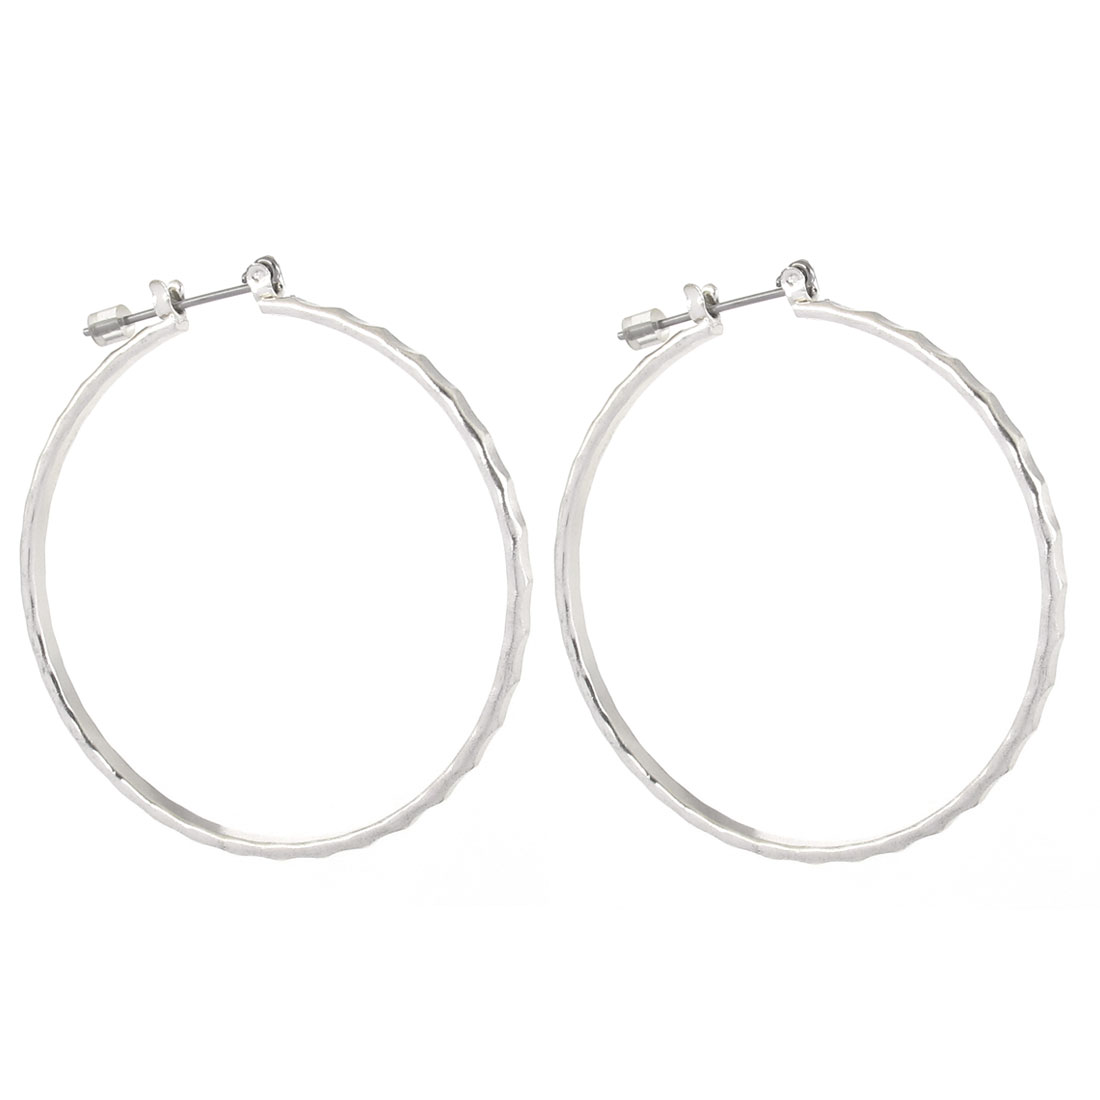 "2"" Dia Silver Tone Metal Edge Textured Circle Hoop Pierced Earrings Pair for Lady Women"